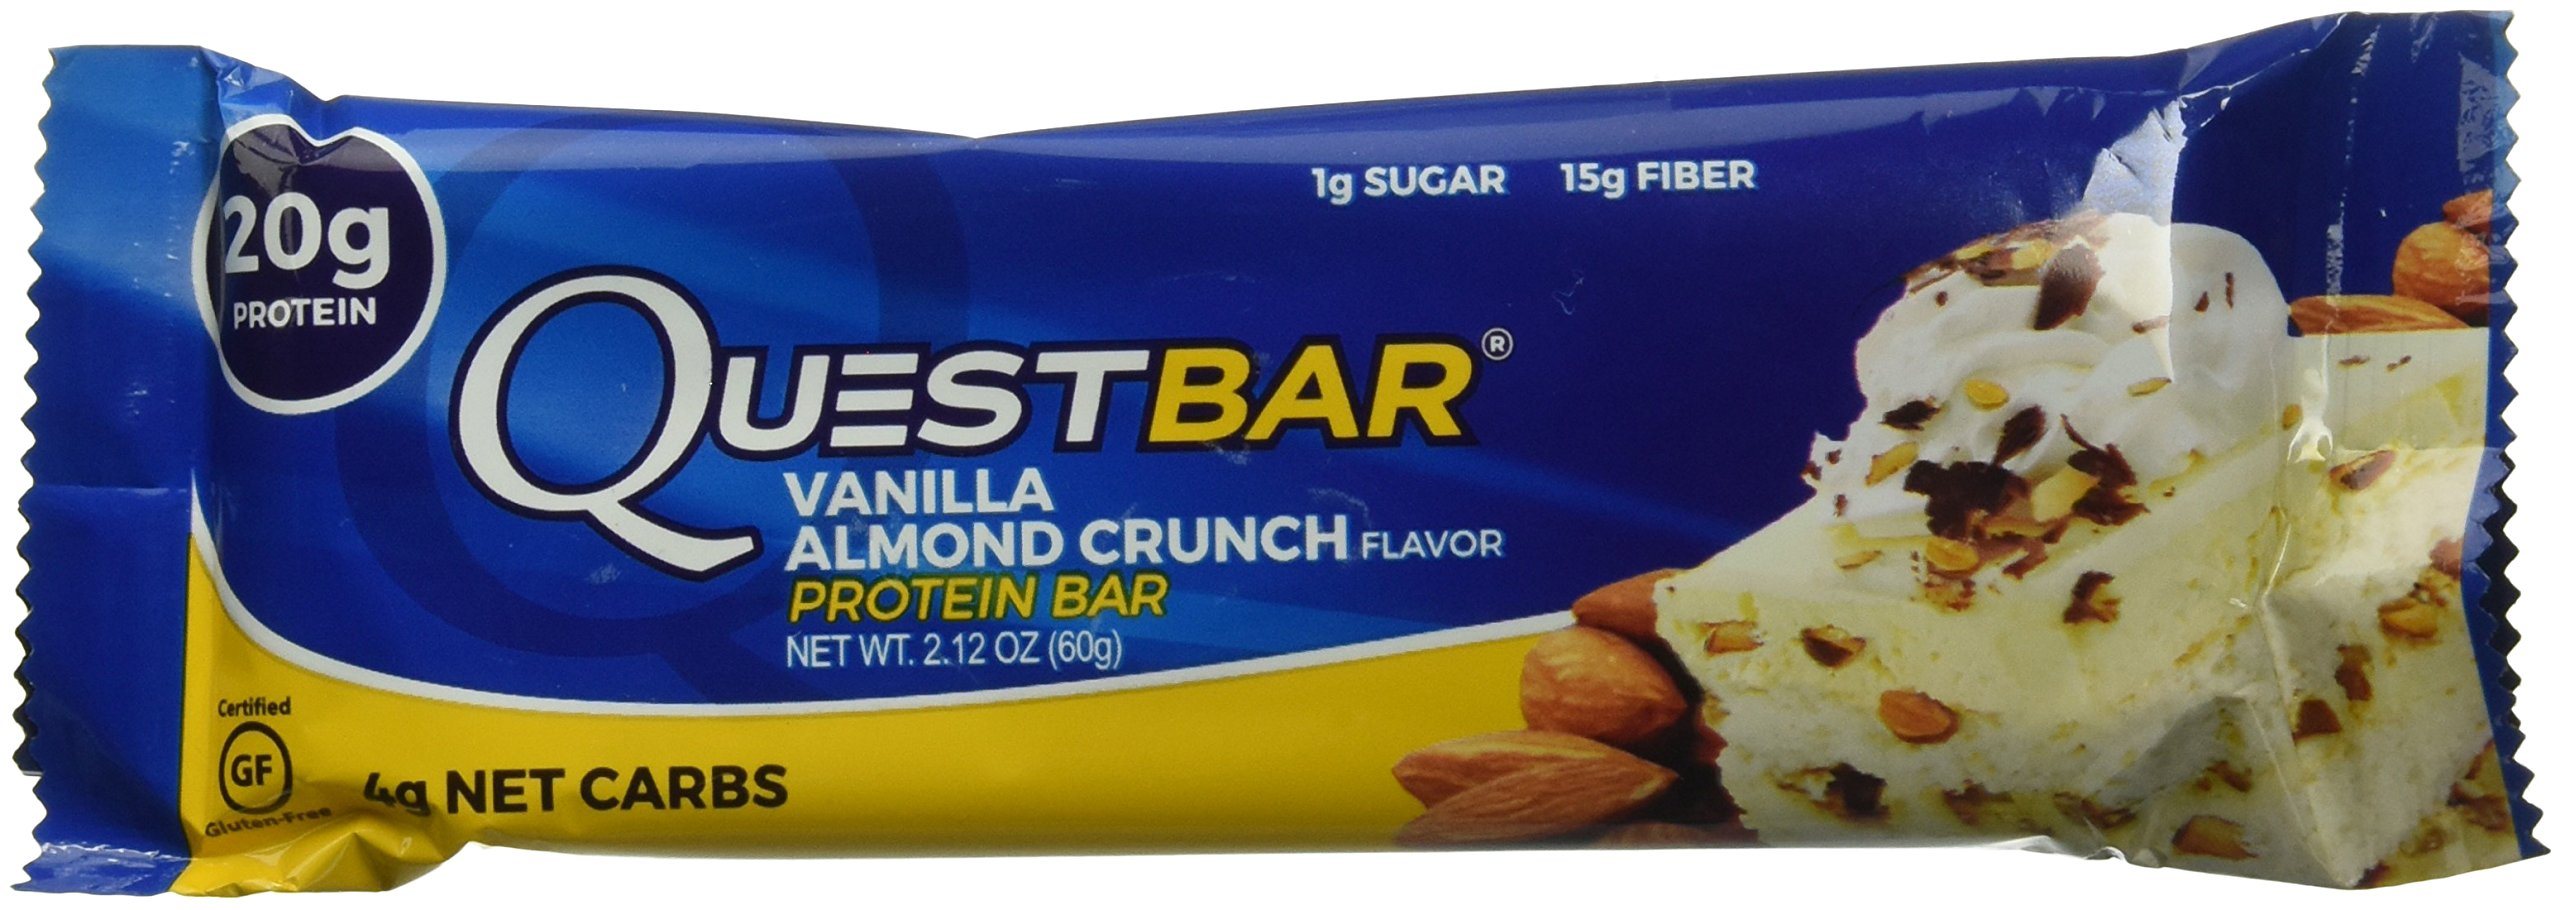 Quest Nutrition Protein Bar, Vanilla Almond Crunch, 20g Protein, 4g Net Carbs, 200 Cals, 2.1oz Bar, 1 Count, High Protein, Low Carb, Gluten Free, Soy Free